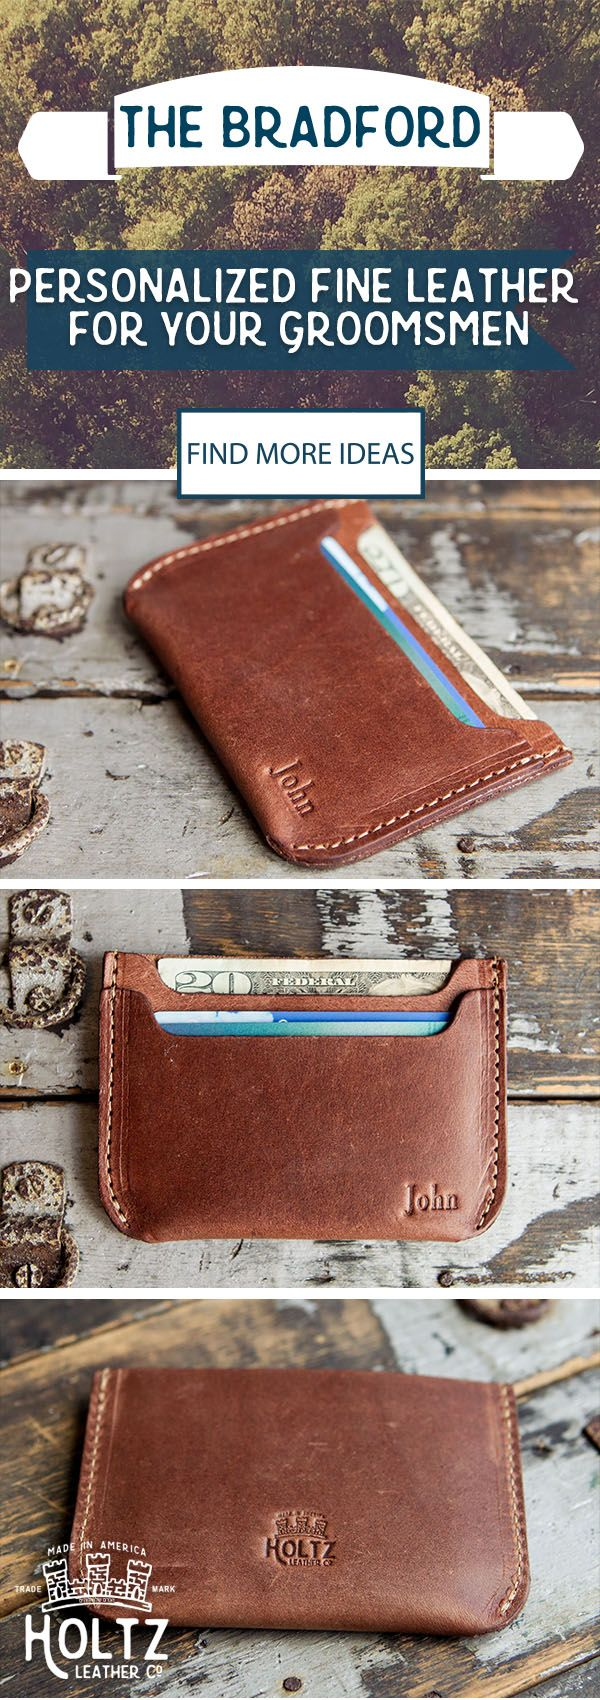 Holtz leather coupon code